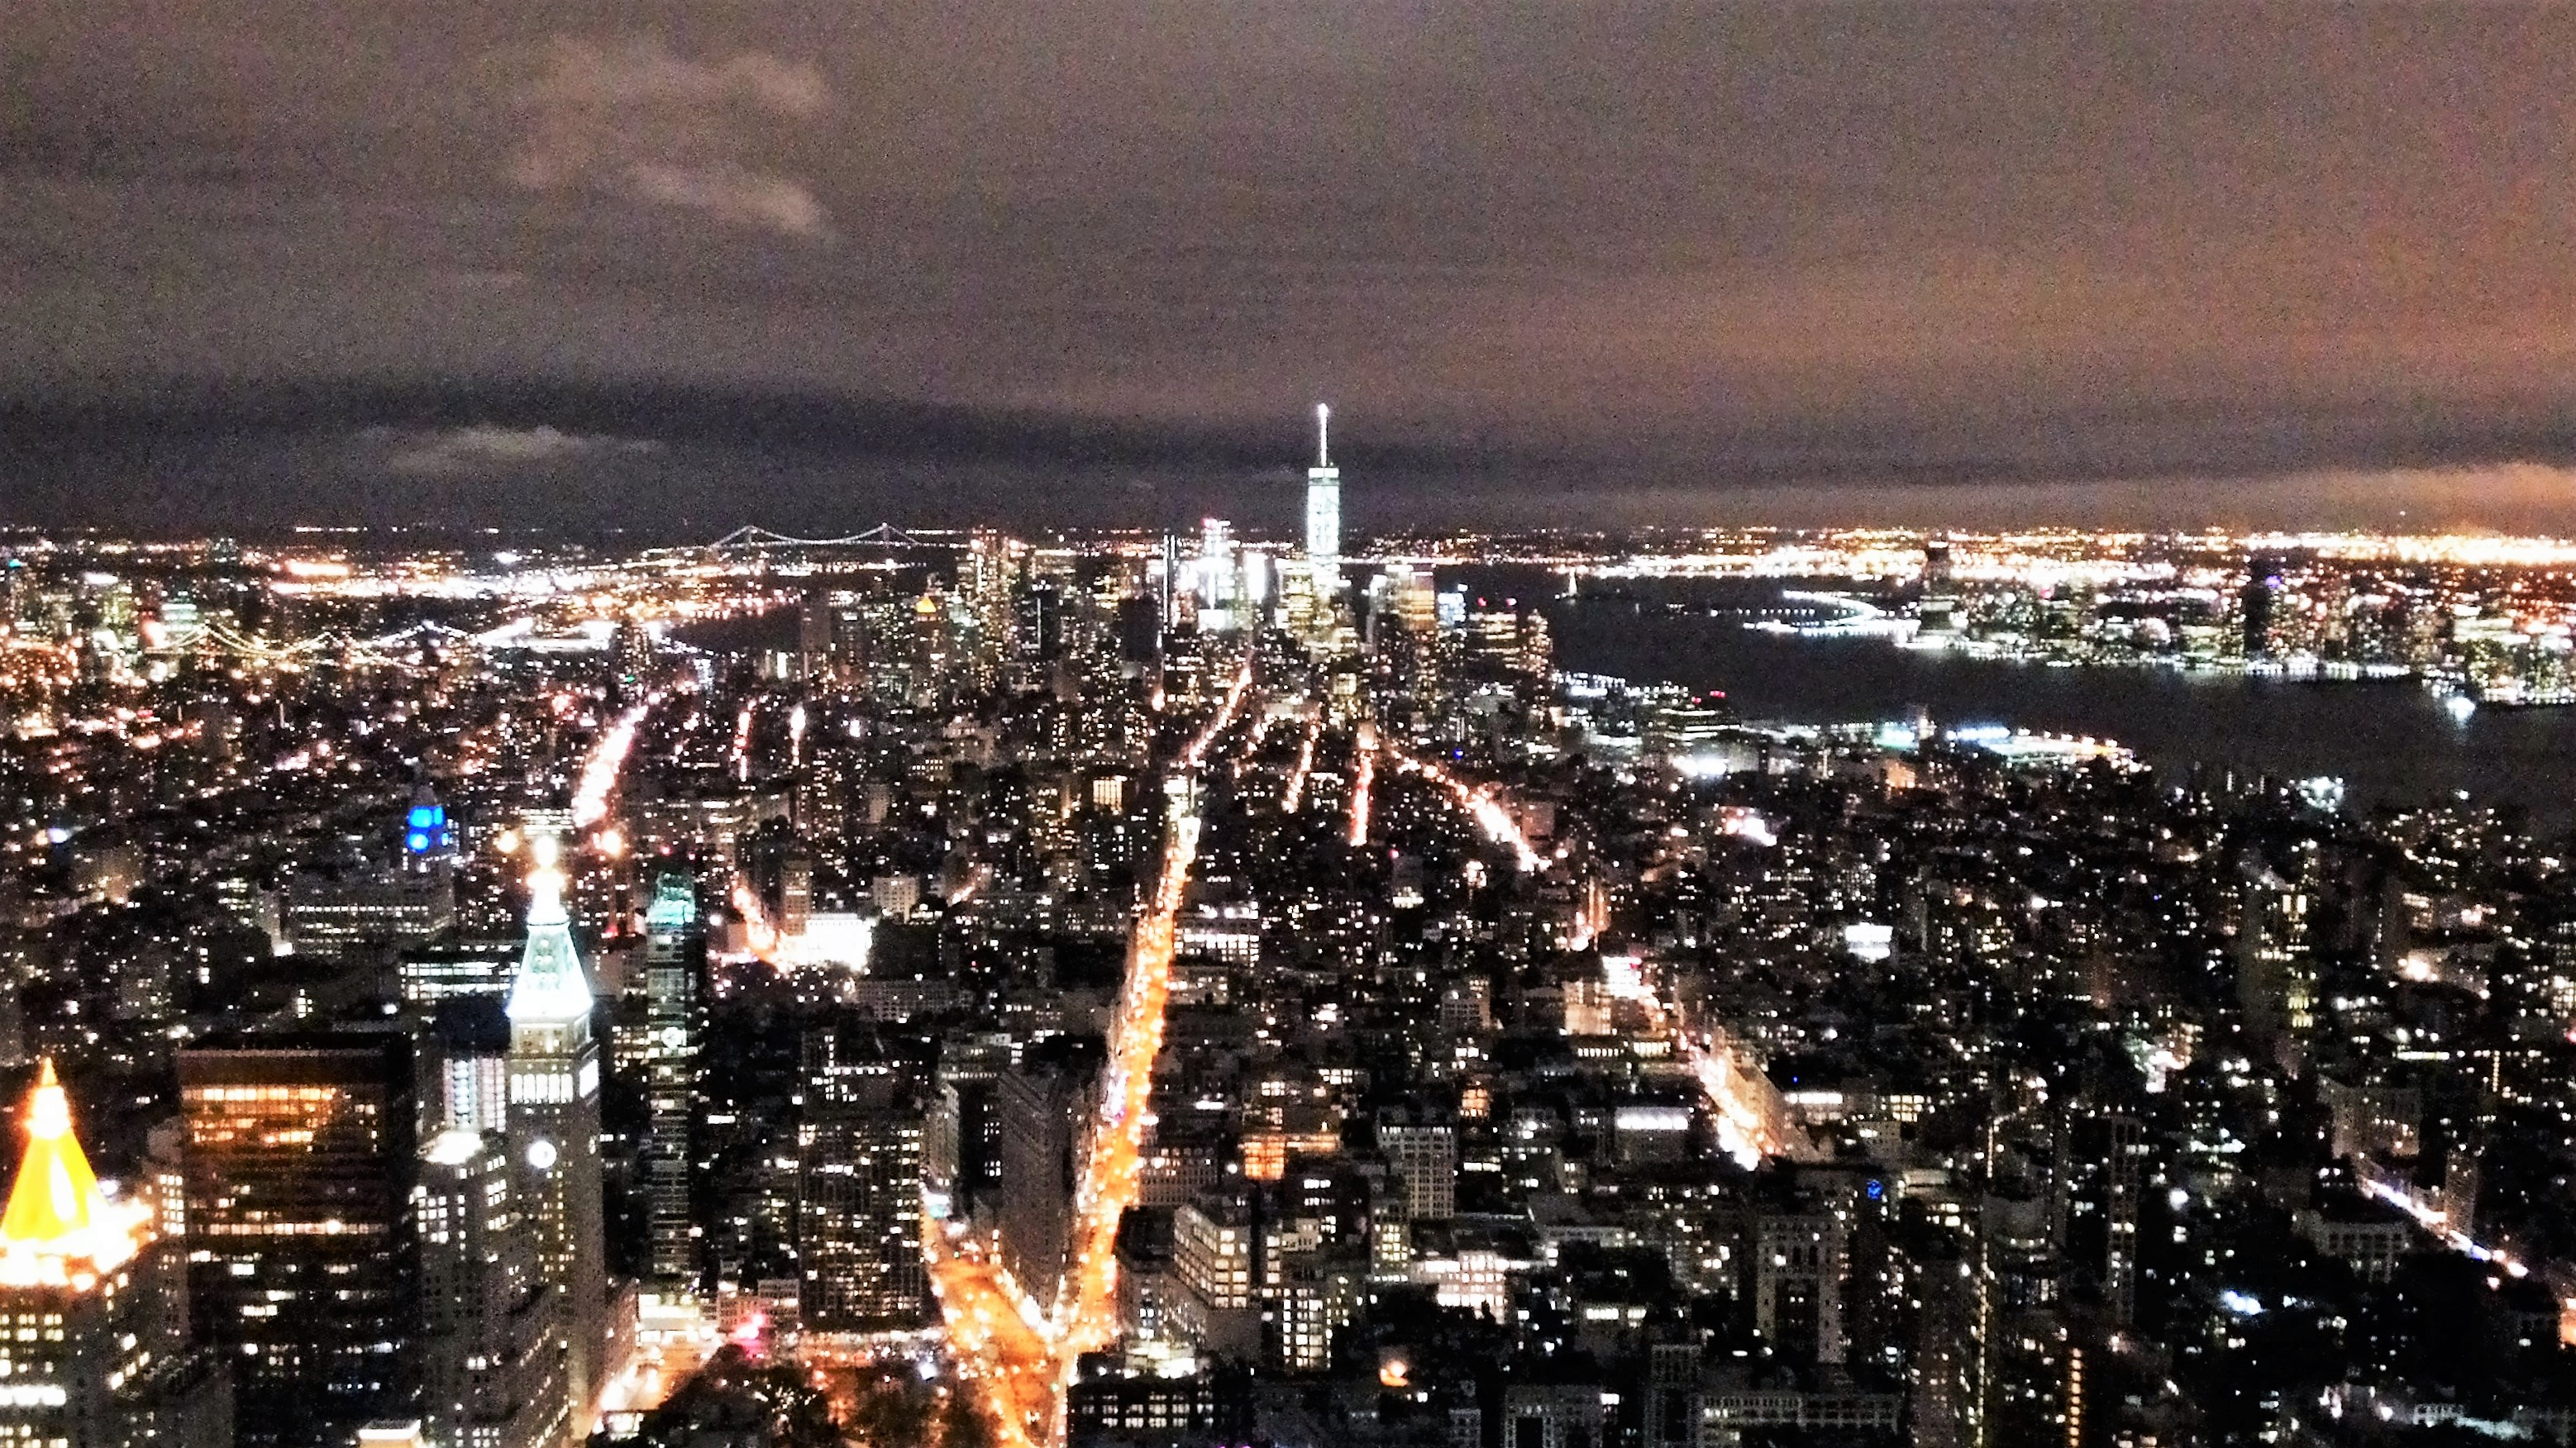 The Beautiful Night Lights Of New York City - Flavorful Travels